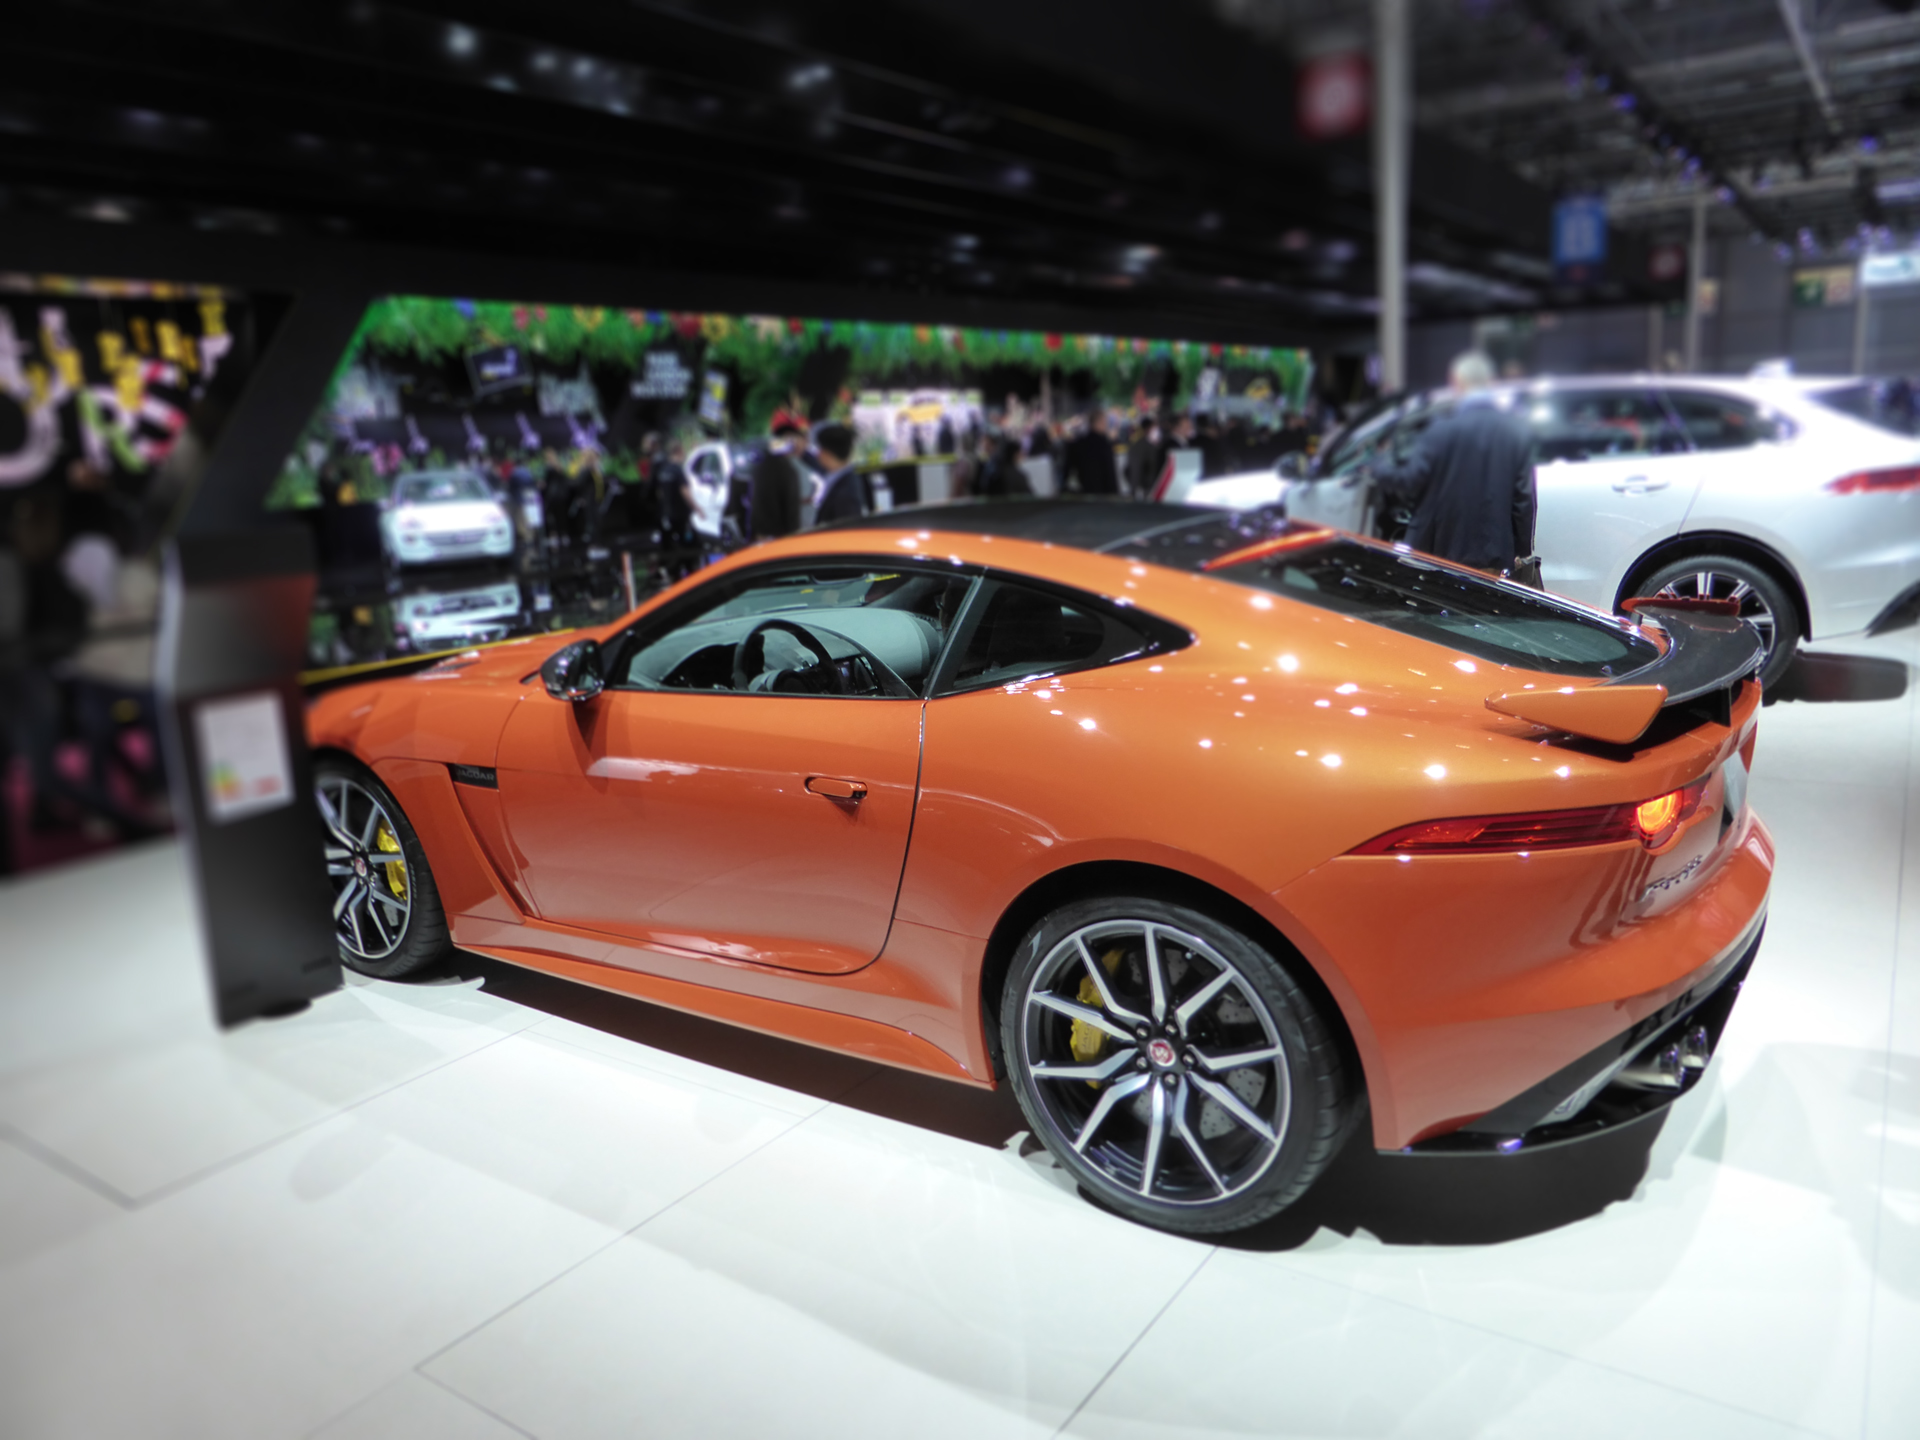 Jaguar F-TYPE - arriere / rear - 2016 - Mondial Auto - photo ELJ DM